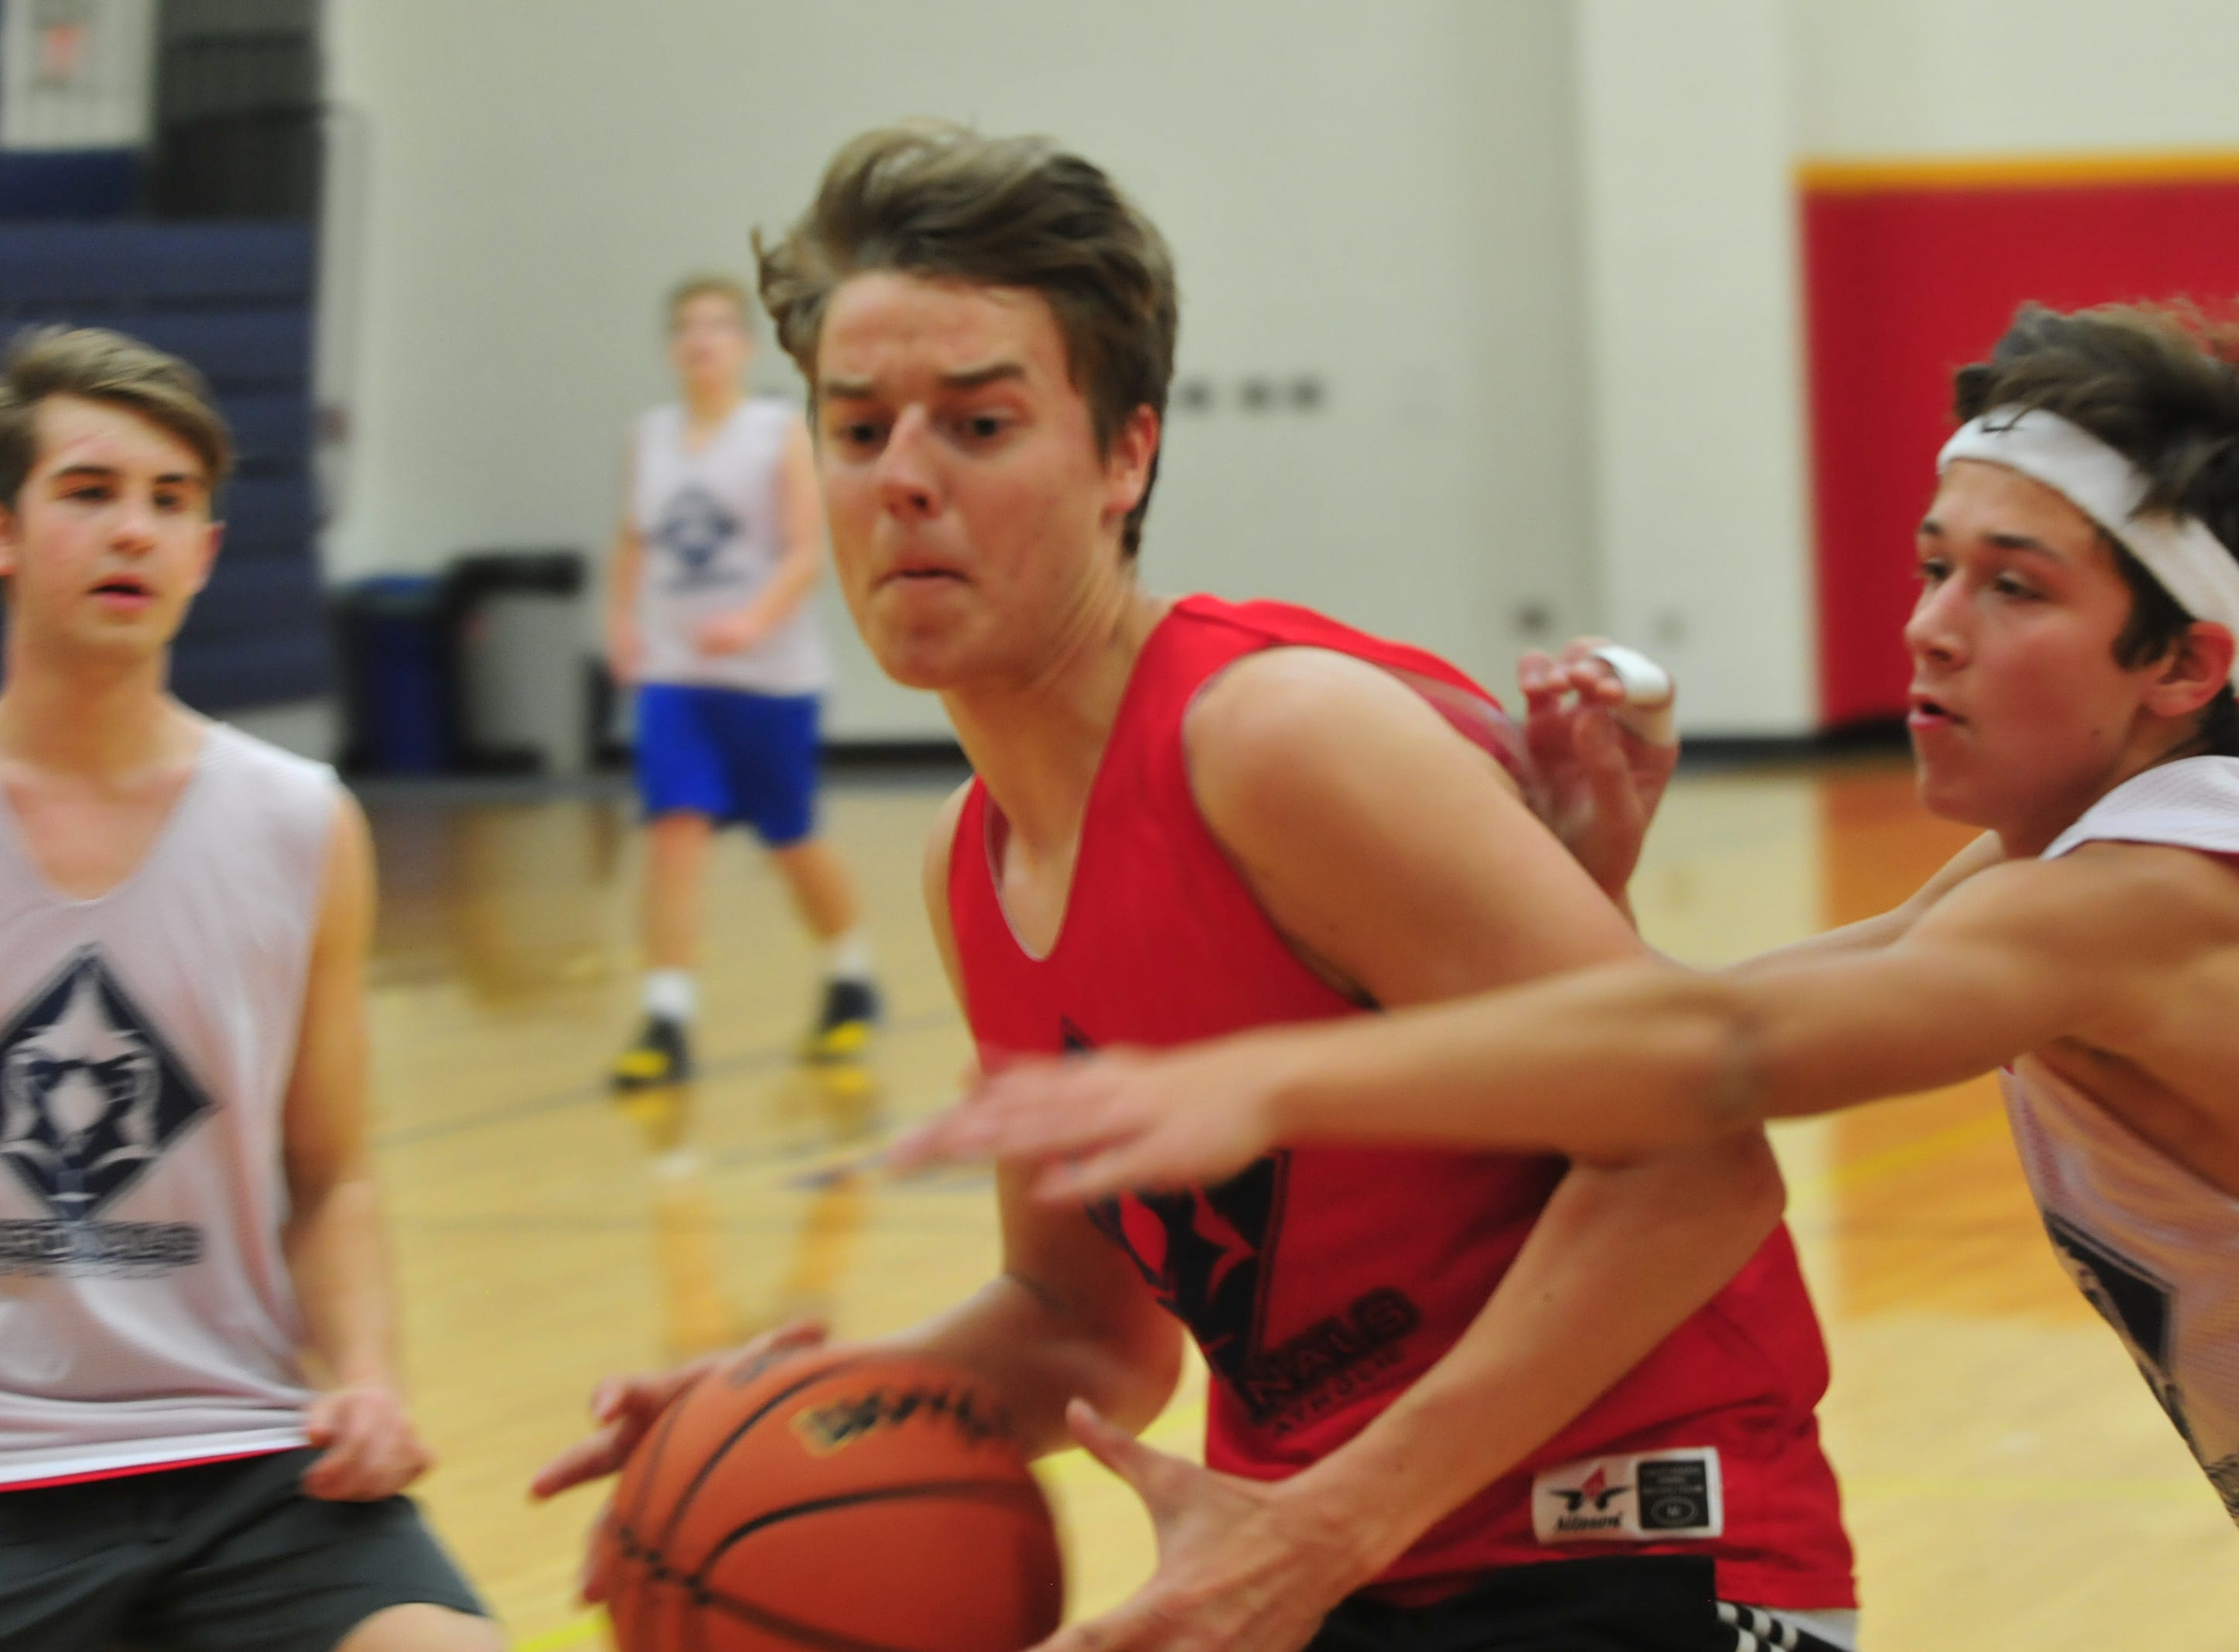 Seton Catholic senior Adam Deitsch moves the ball to the basket during practice Wednesday, Nov. 28, 2018.